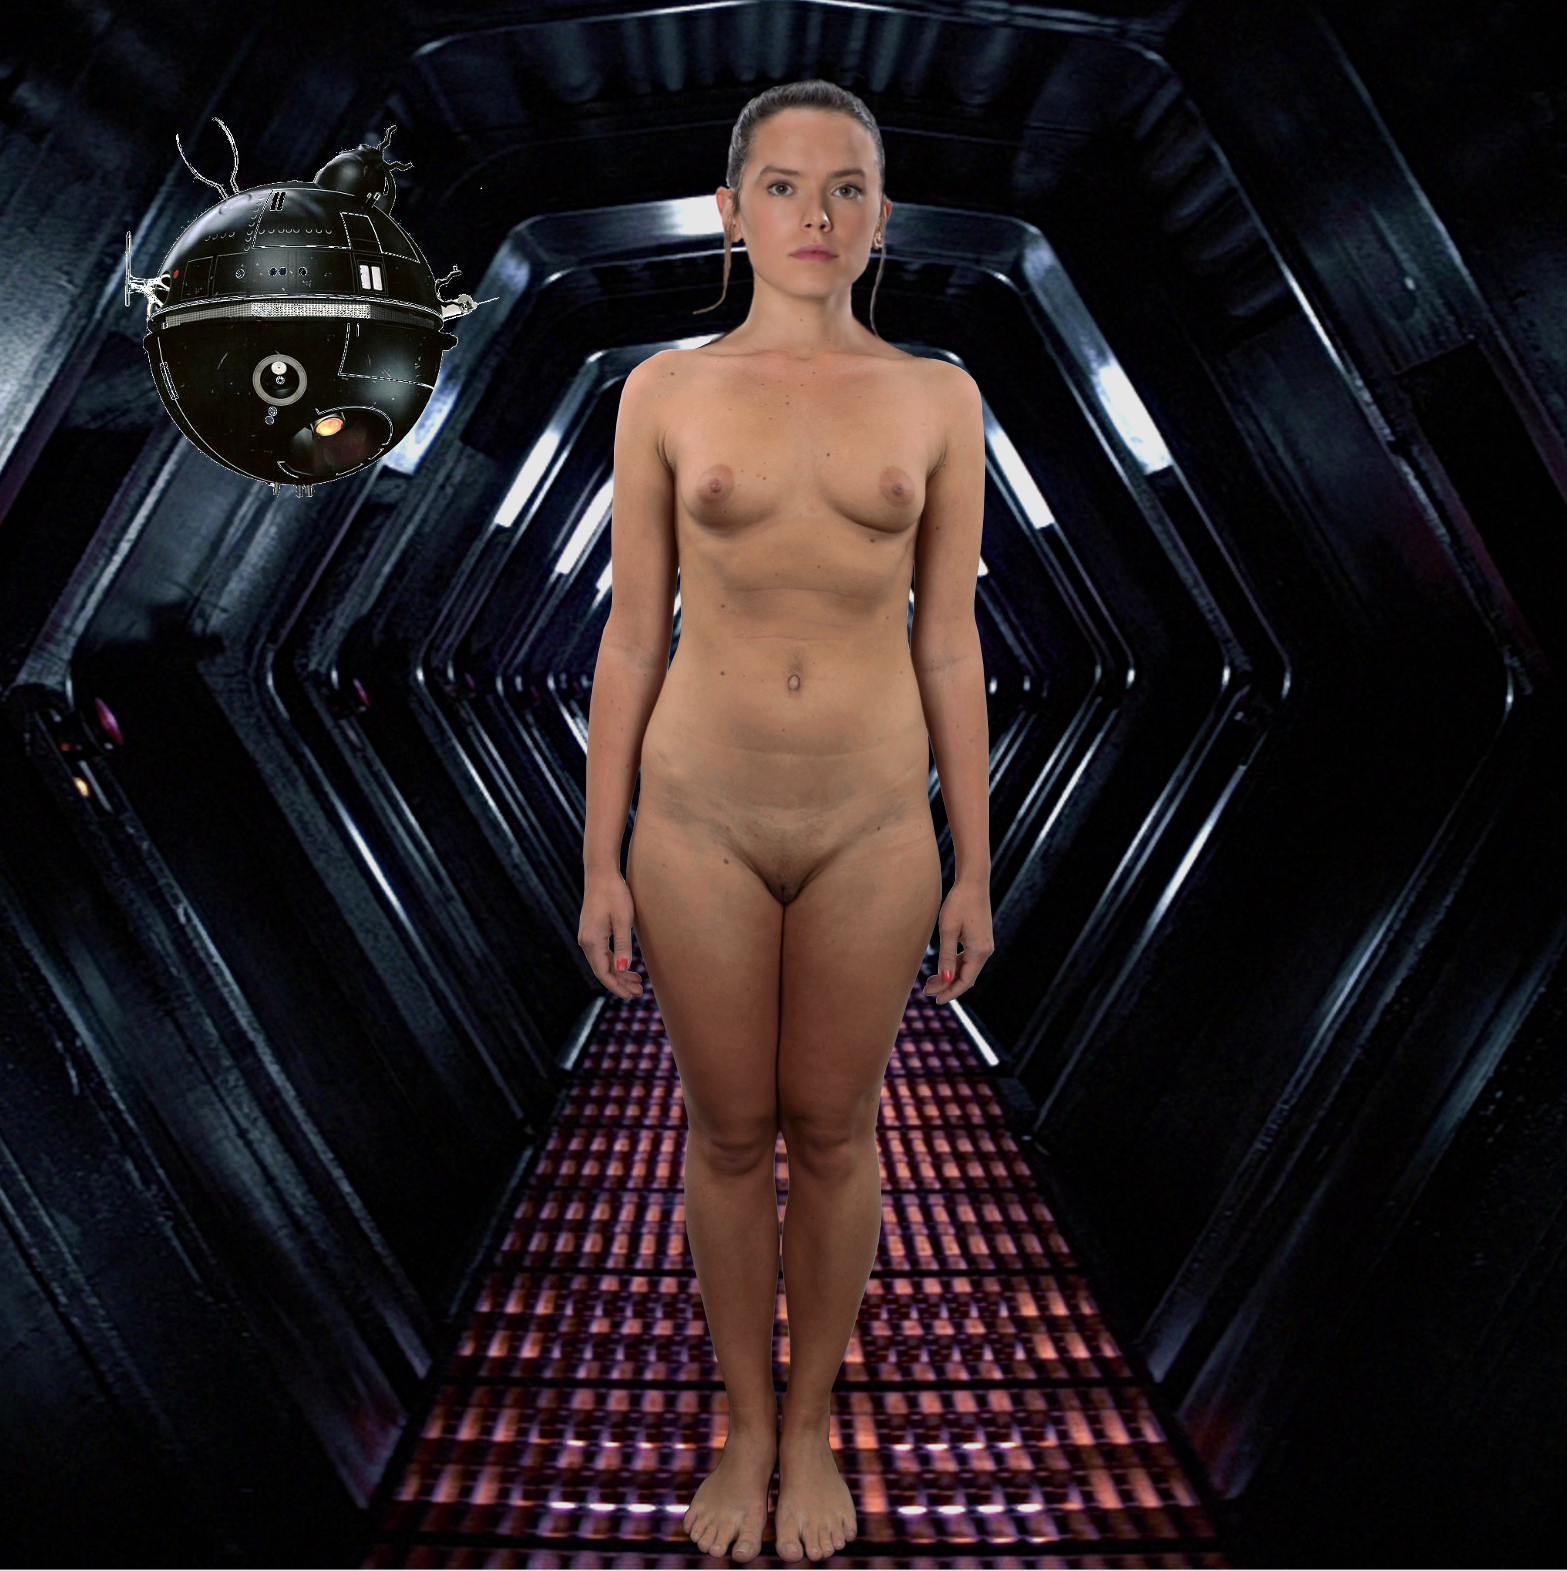 Star wars hot nude theme interesting